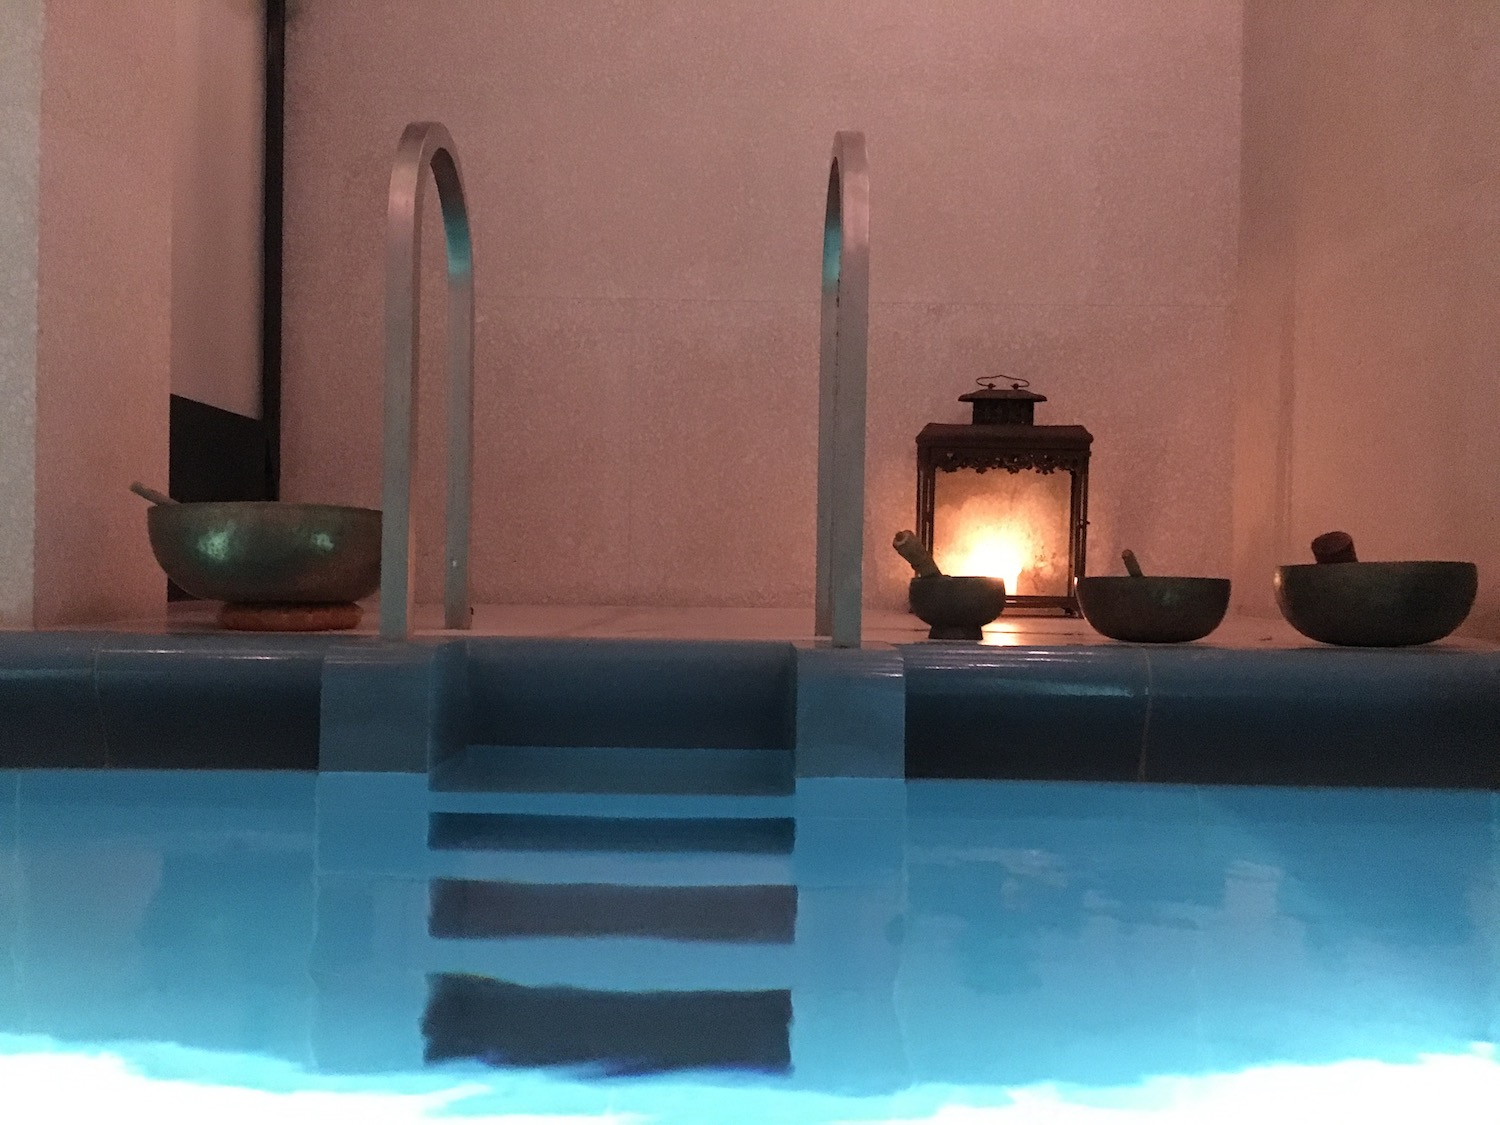 THERAPY POOL AT THE AKASHA SPA, REGENT ST. LONDON